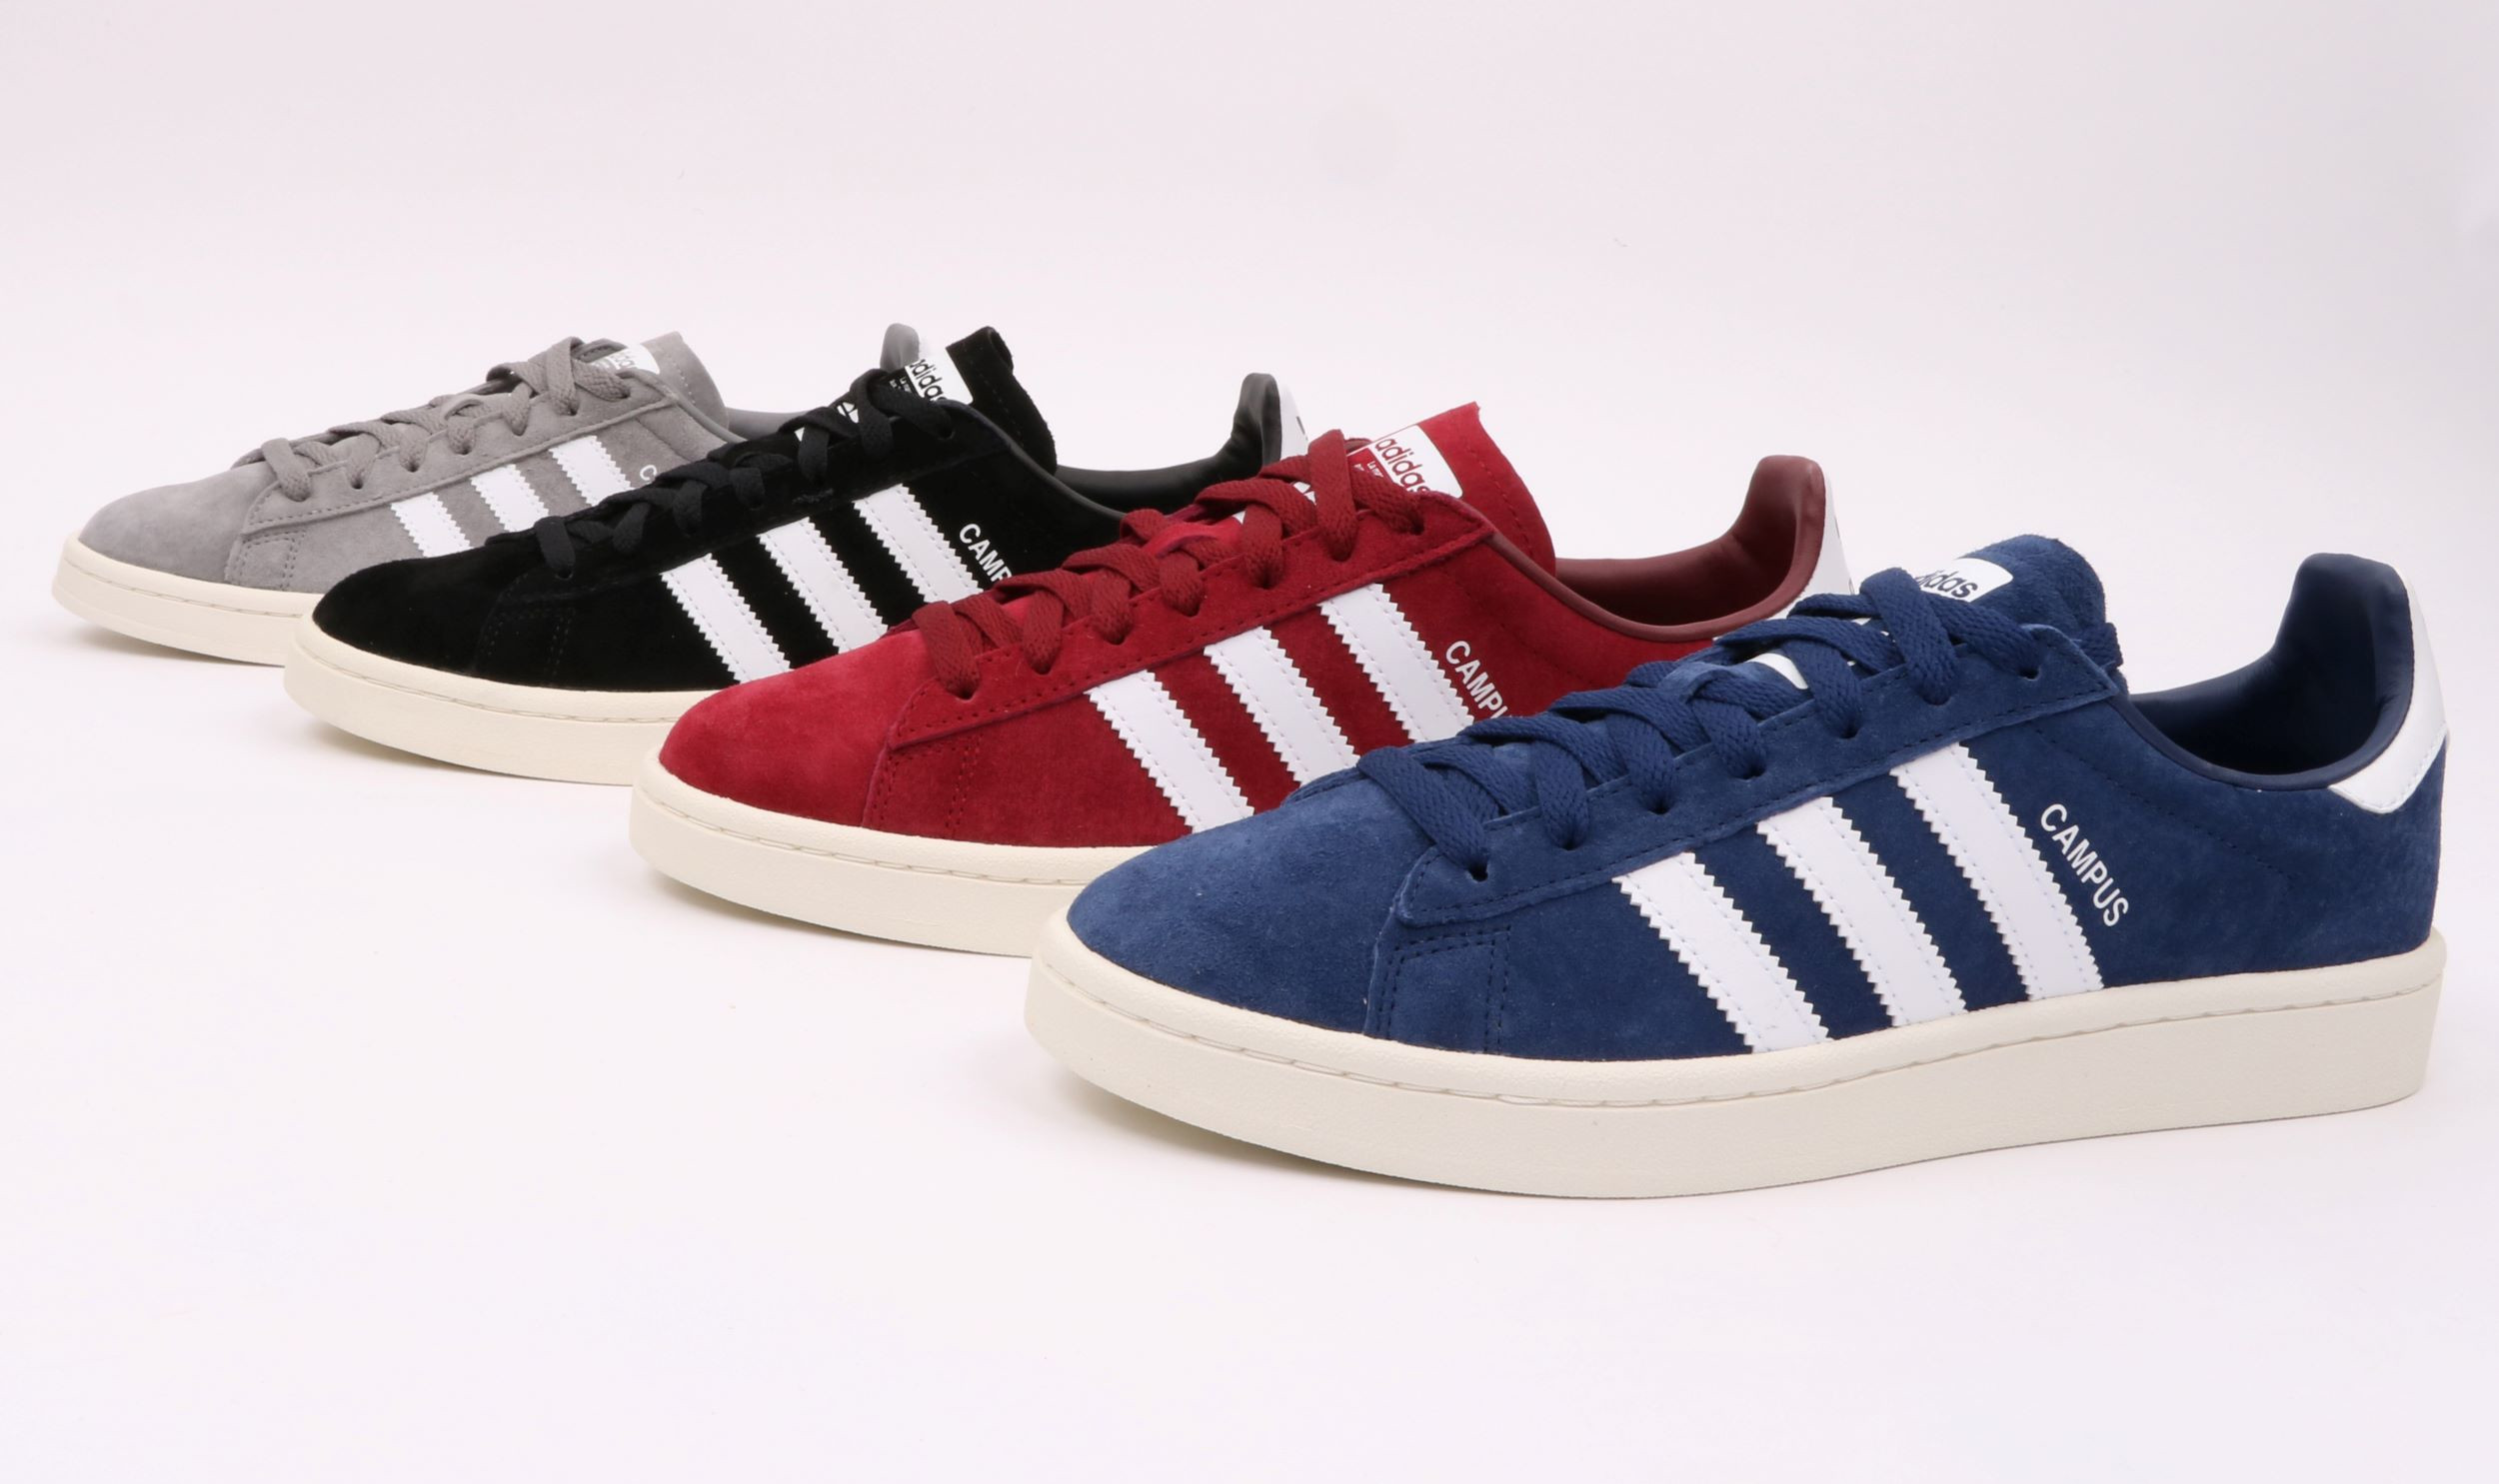 adidas Campus collection